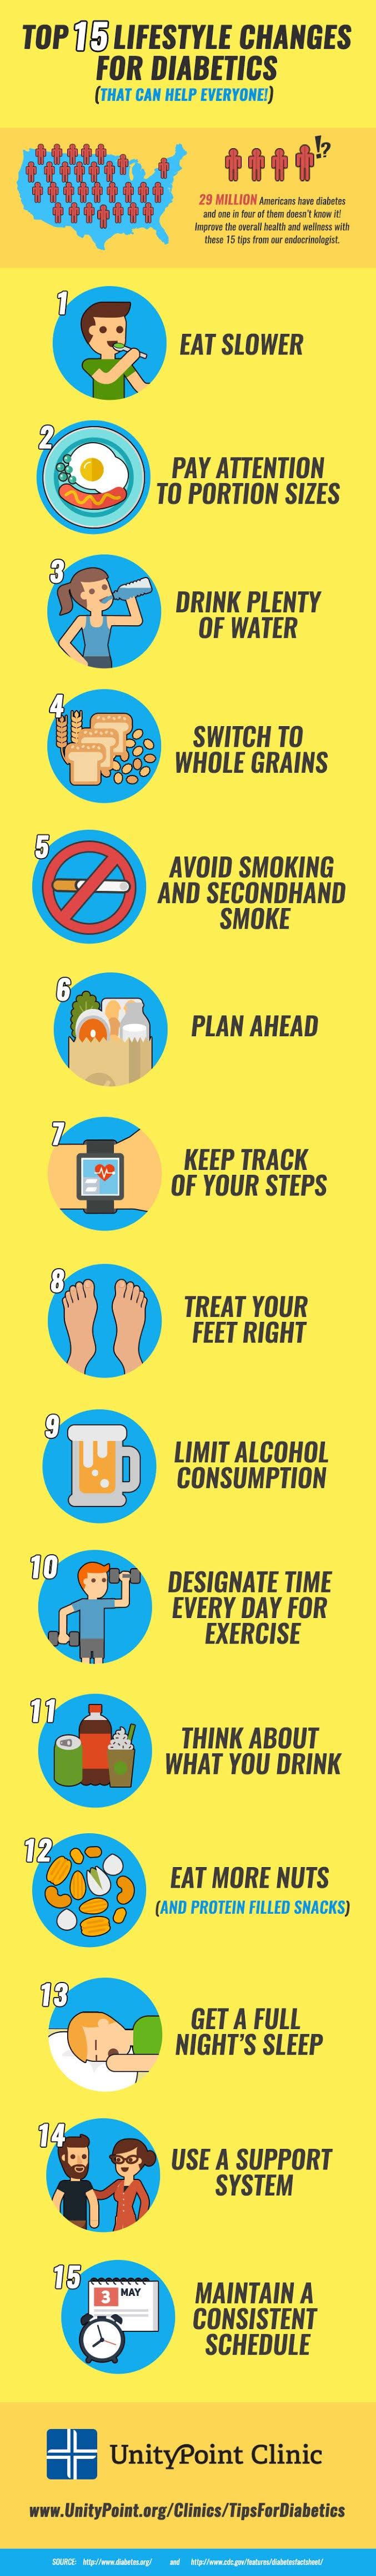 15 Surprising Tips for Diabetics that Can Help Everyone #infographic